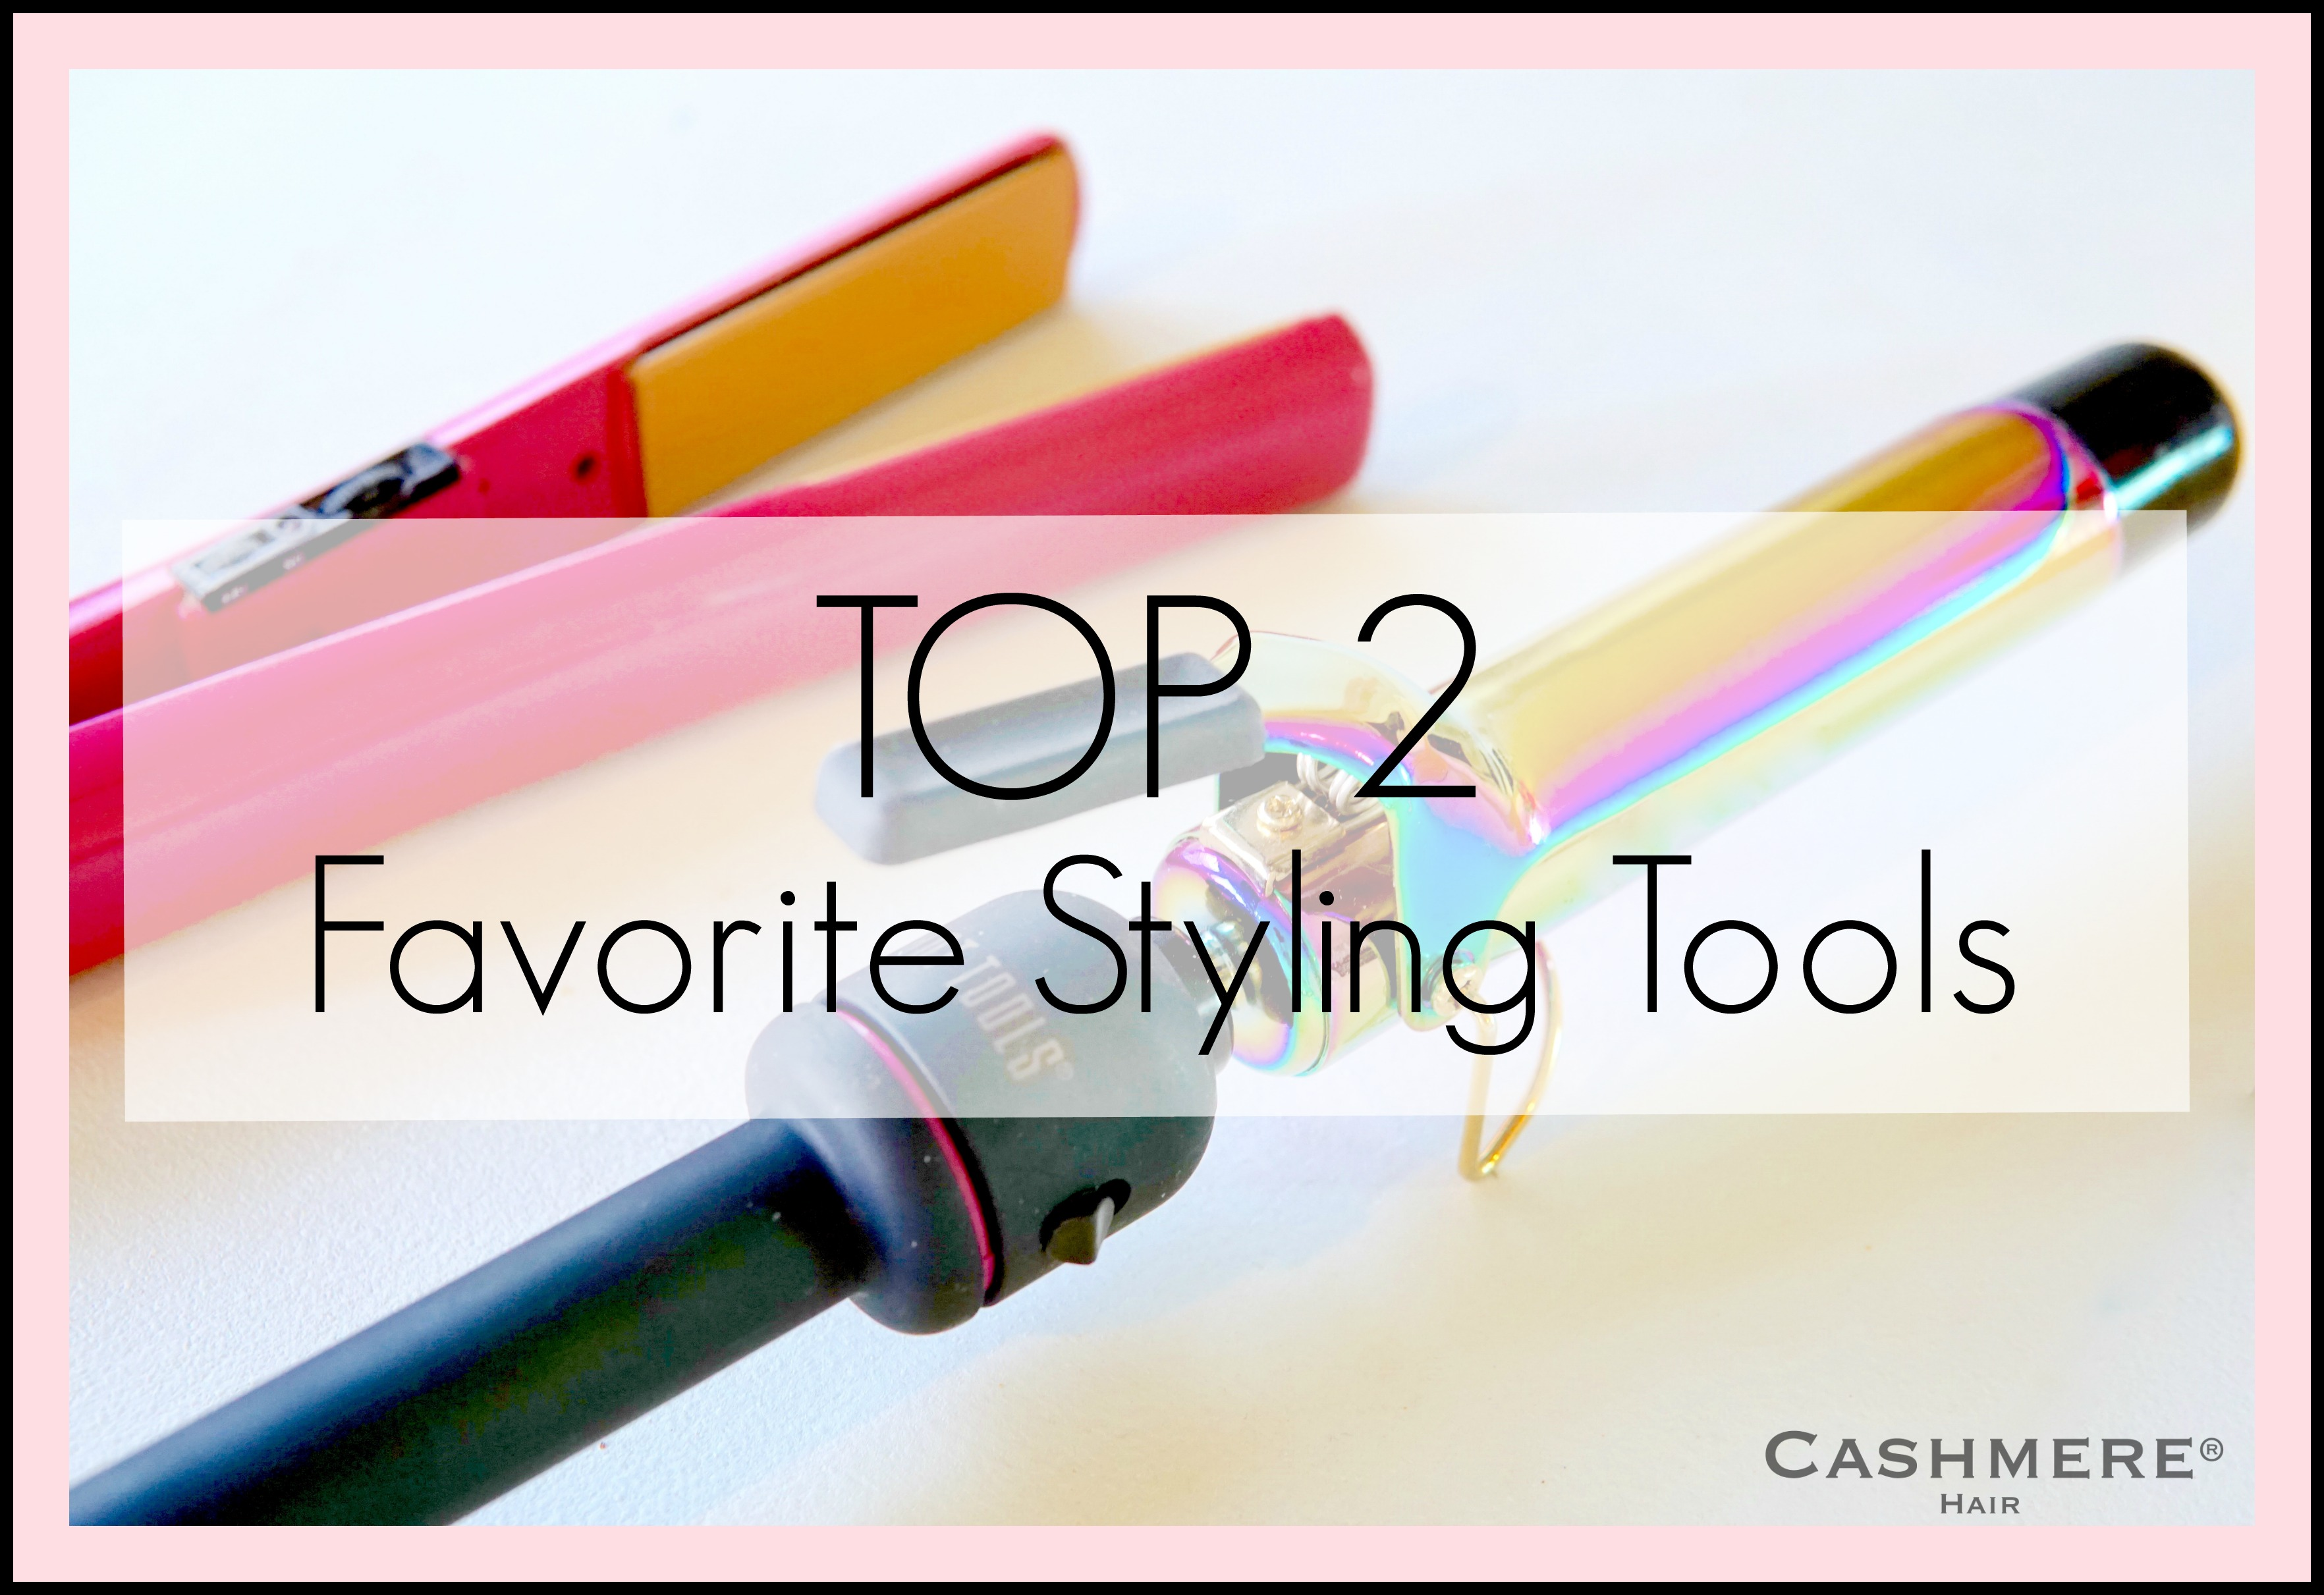 Top 2 Favorite Styling Tools